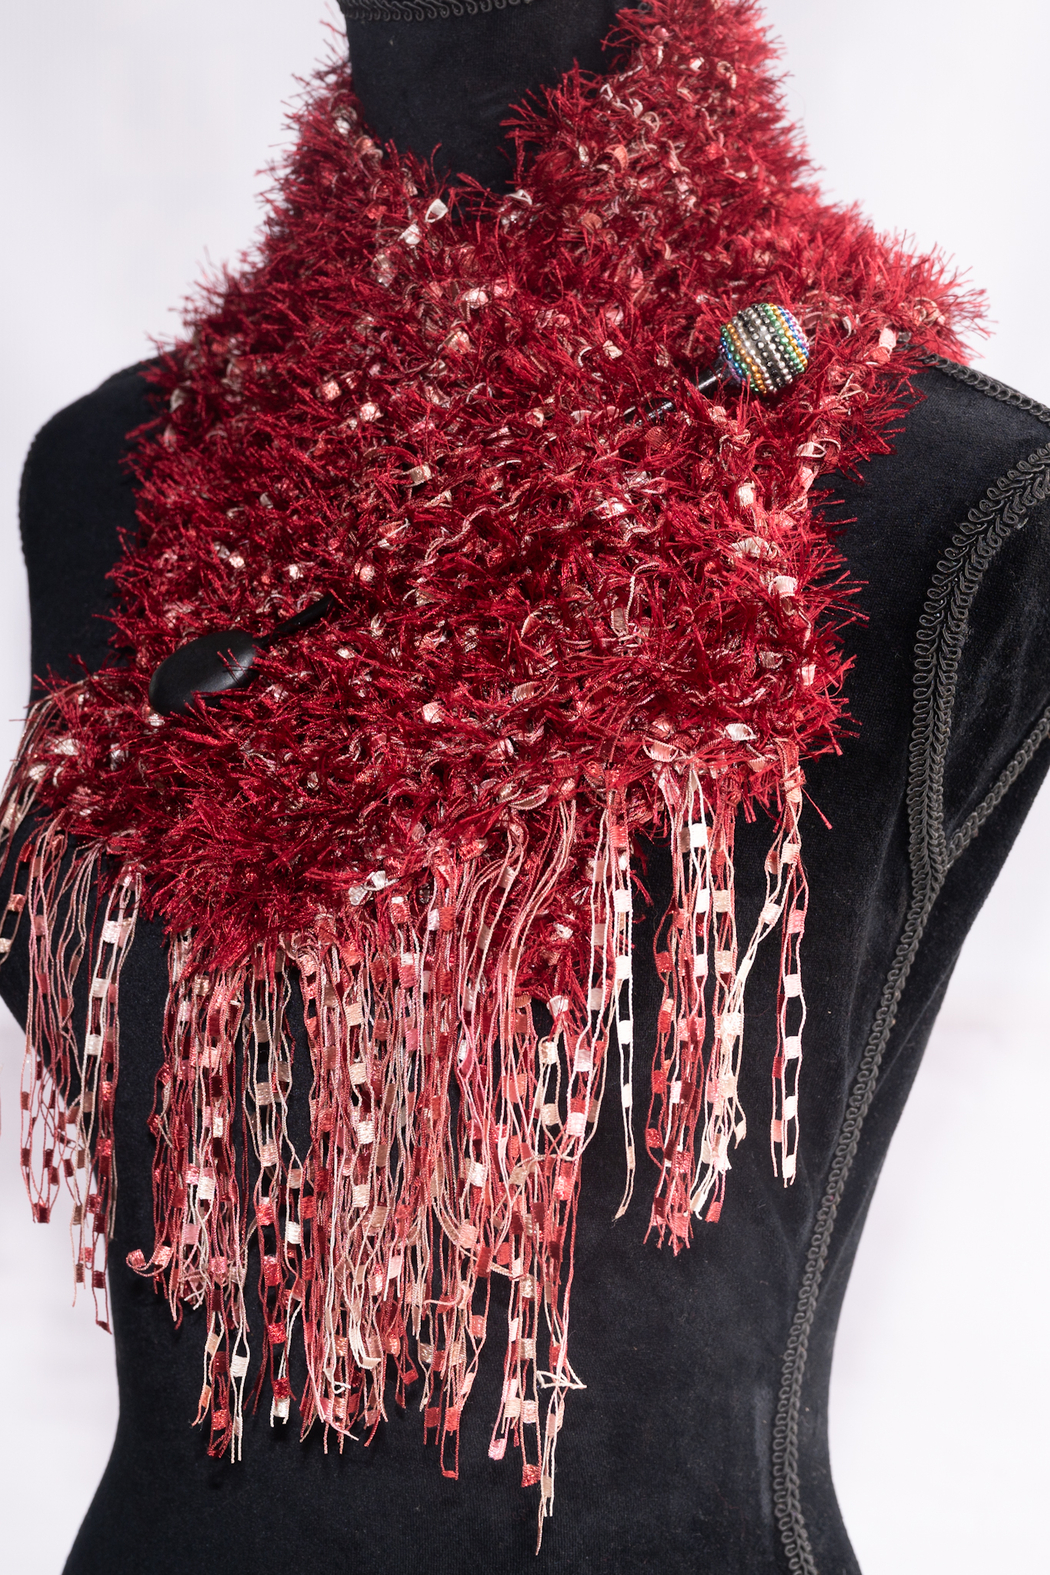 Handmade by CA artist Faux Fur Knit Scarf with Jeweled Pin - Hand-Knit - Back Cropped Image